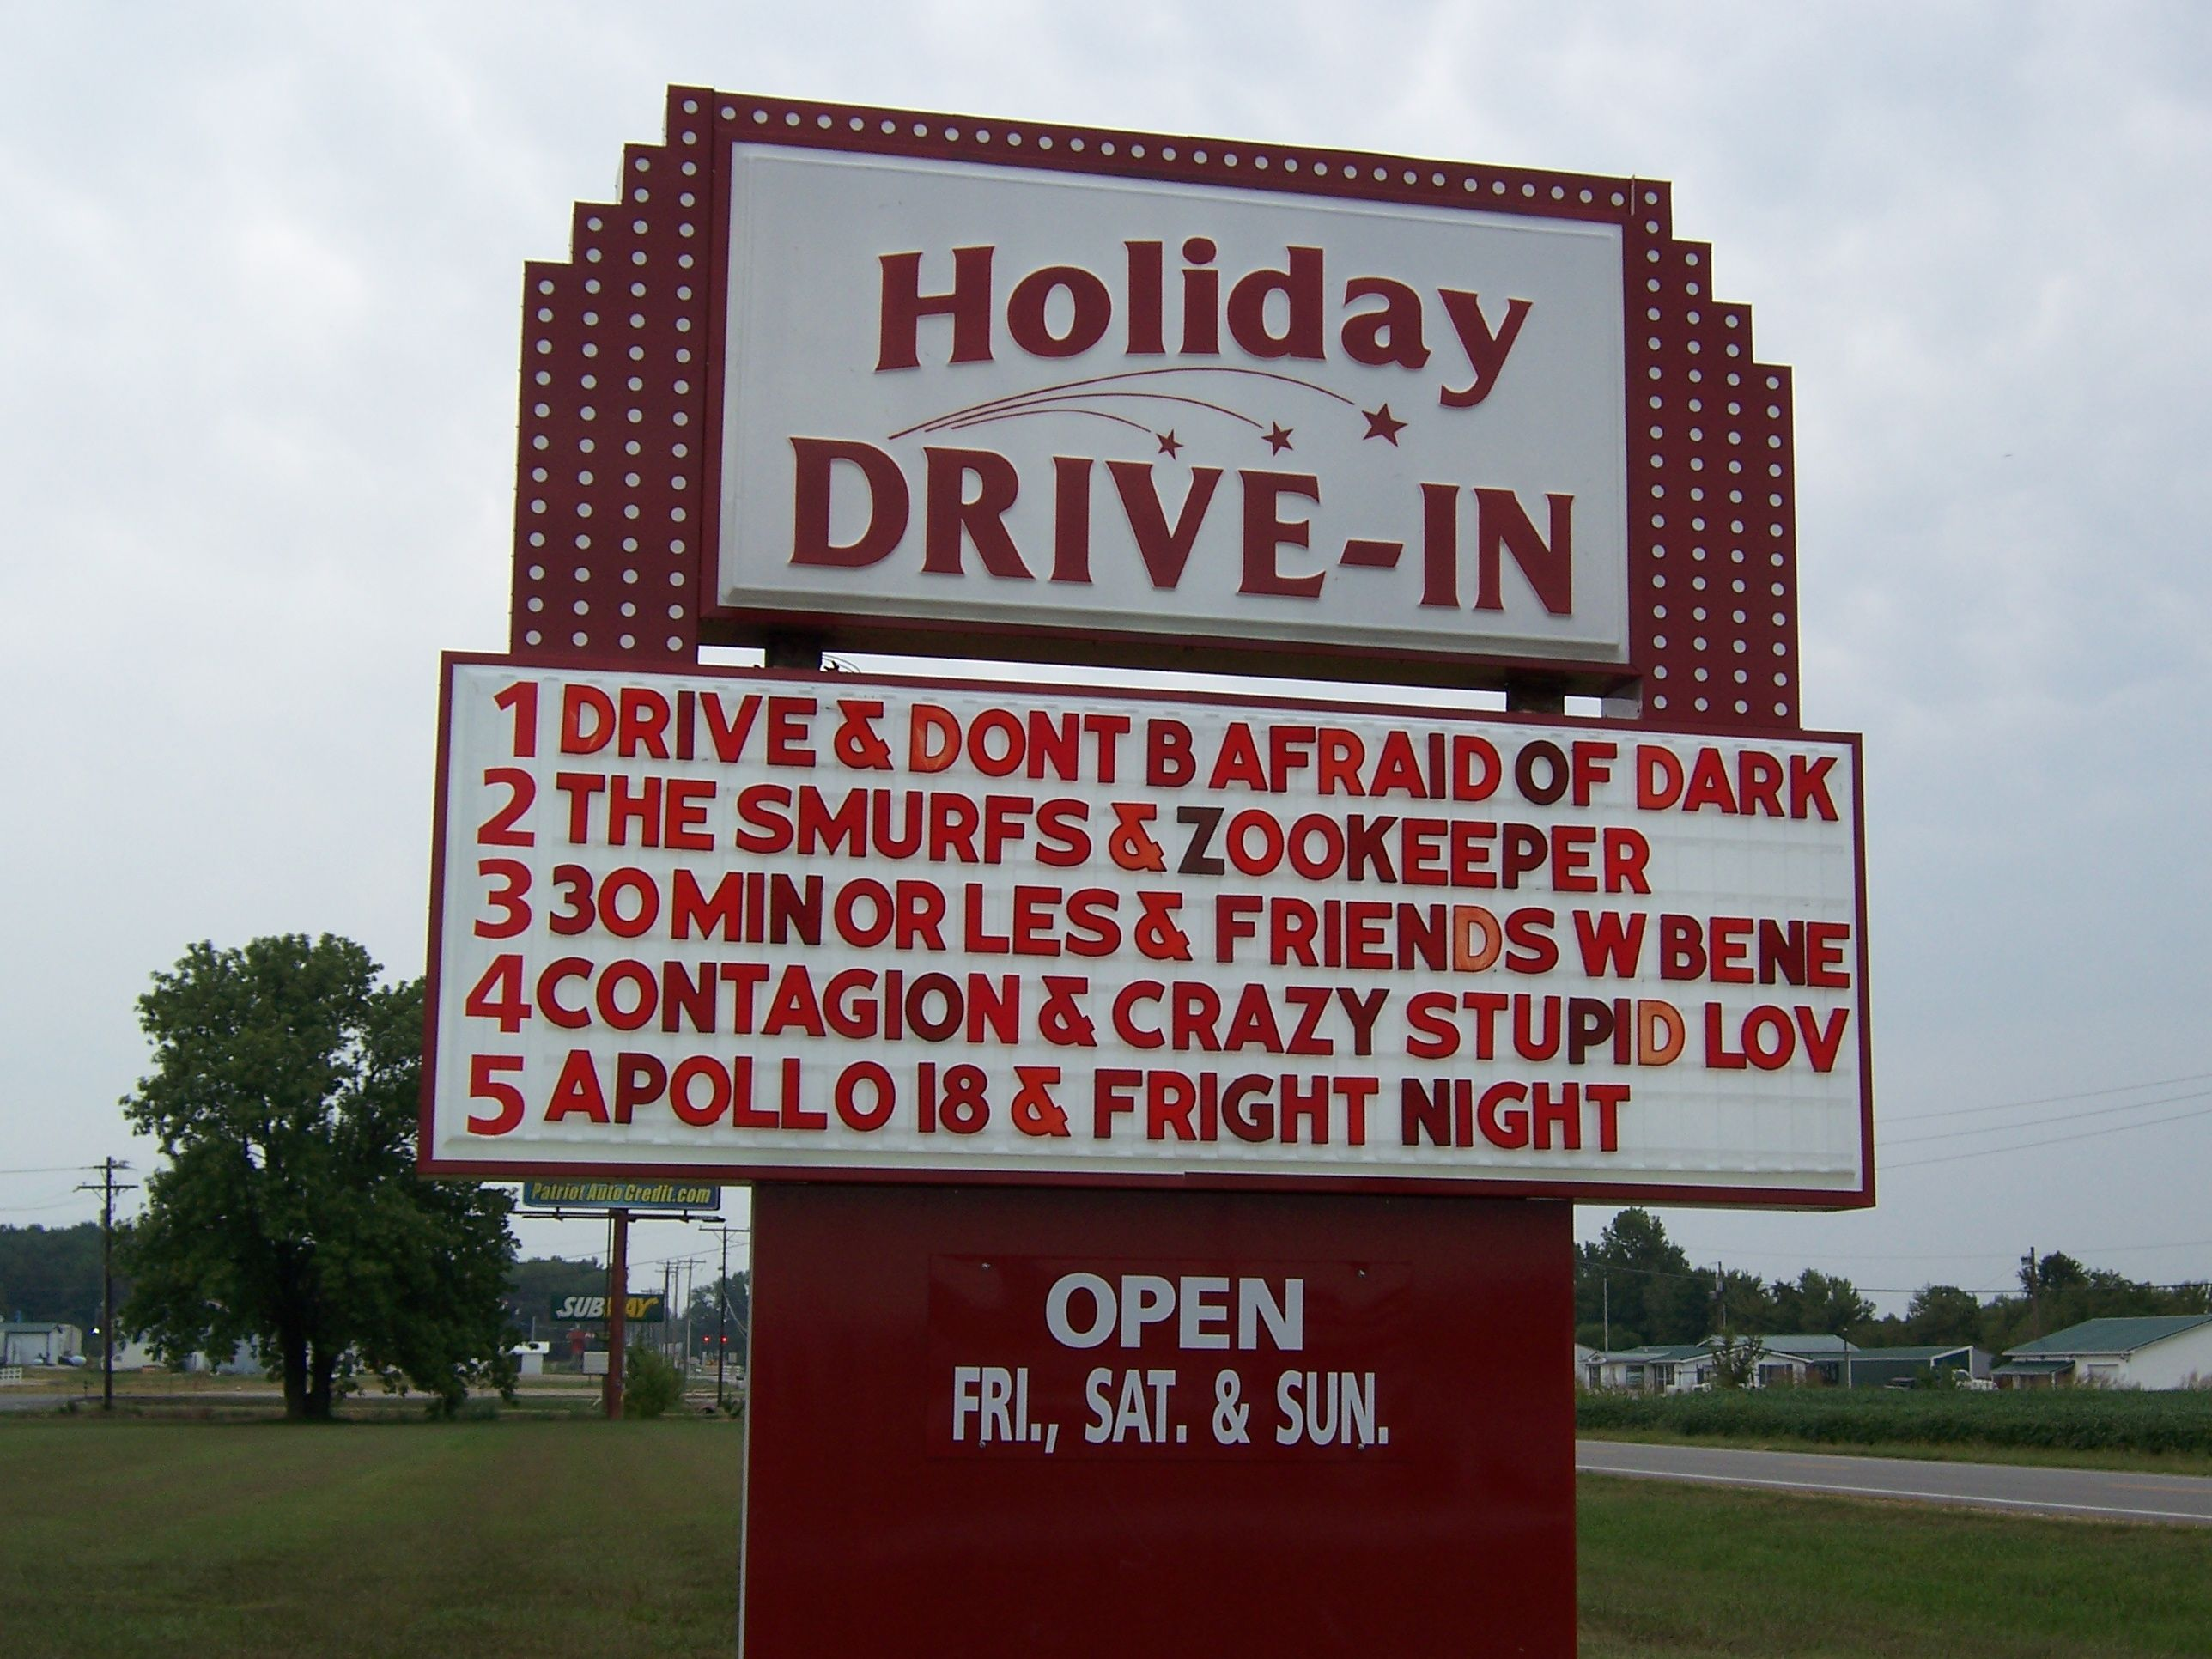 Drive In Reo >> The Holiday Drive In Located 3 Miles West Of Rockport At The Jct